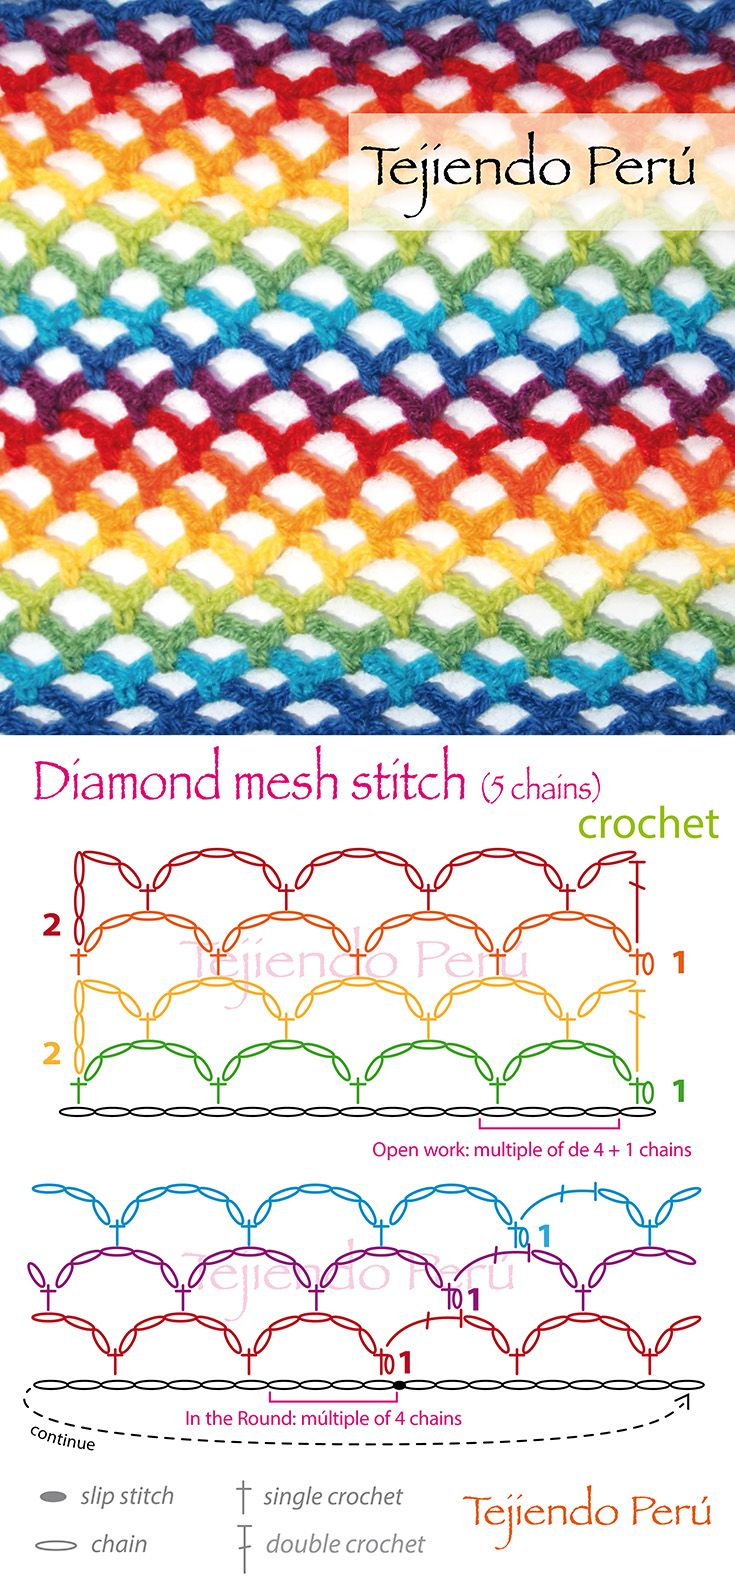 Crochet: diamond mesh stitch (5 chains) diagram (pattern or chart ...